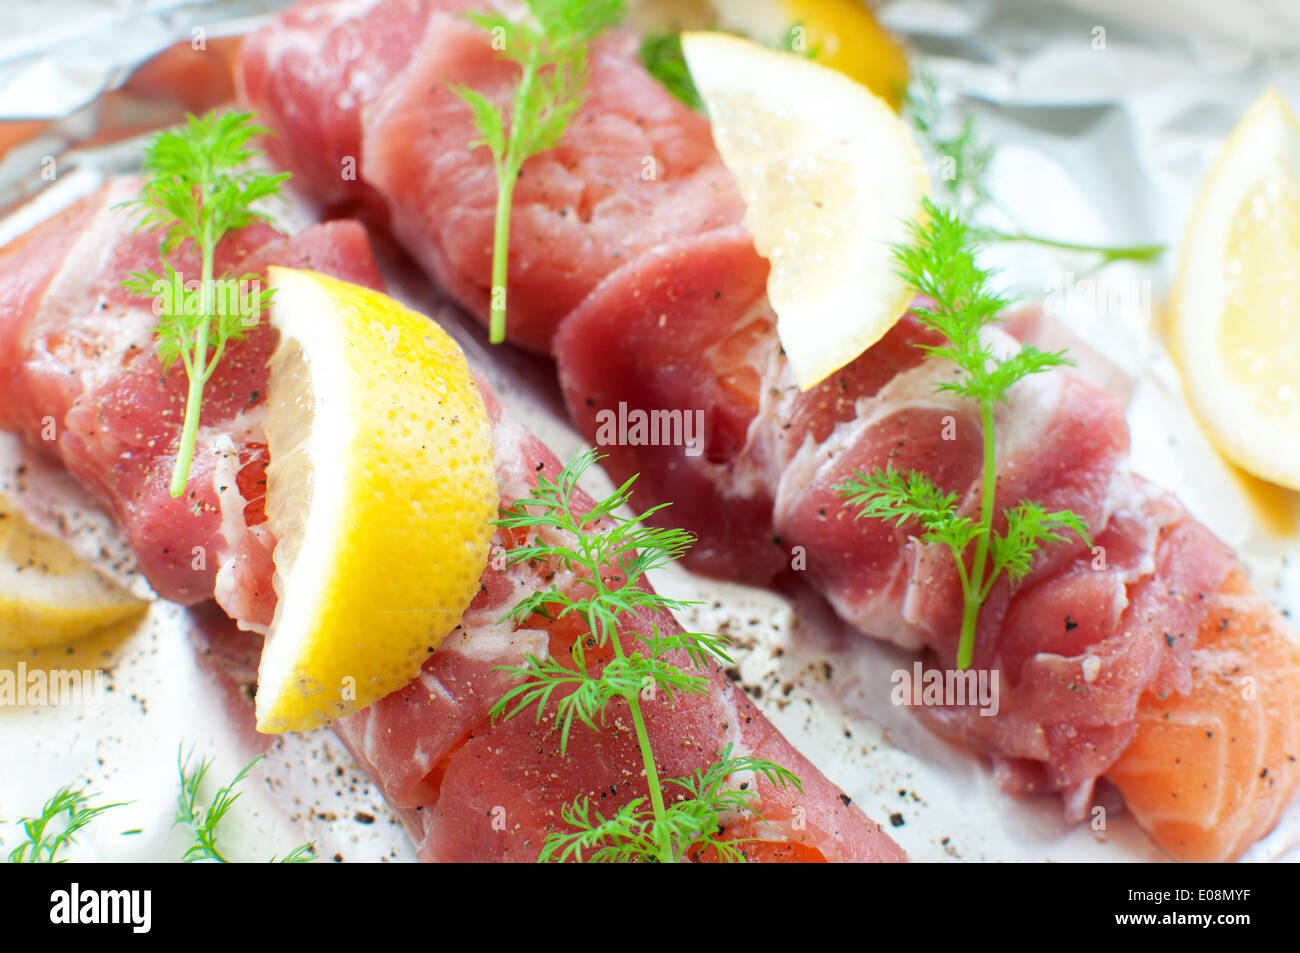 Bacon wrapped fresh salmon fillets - Stock Image